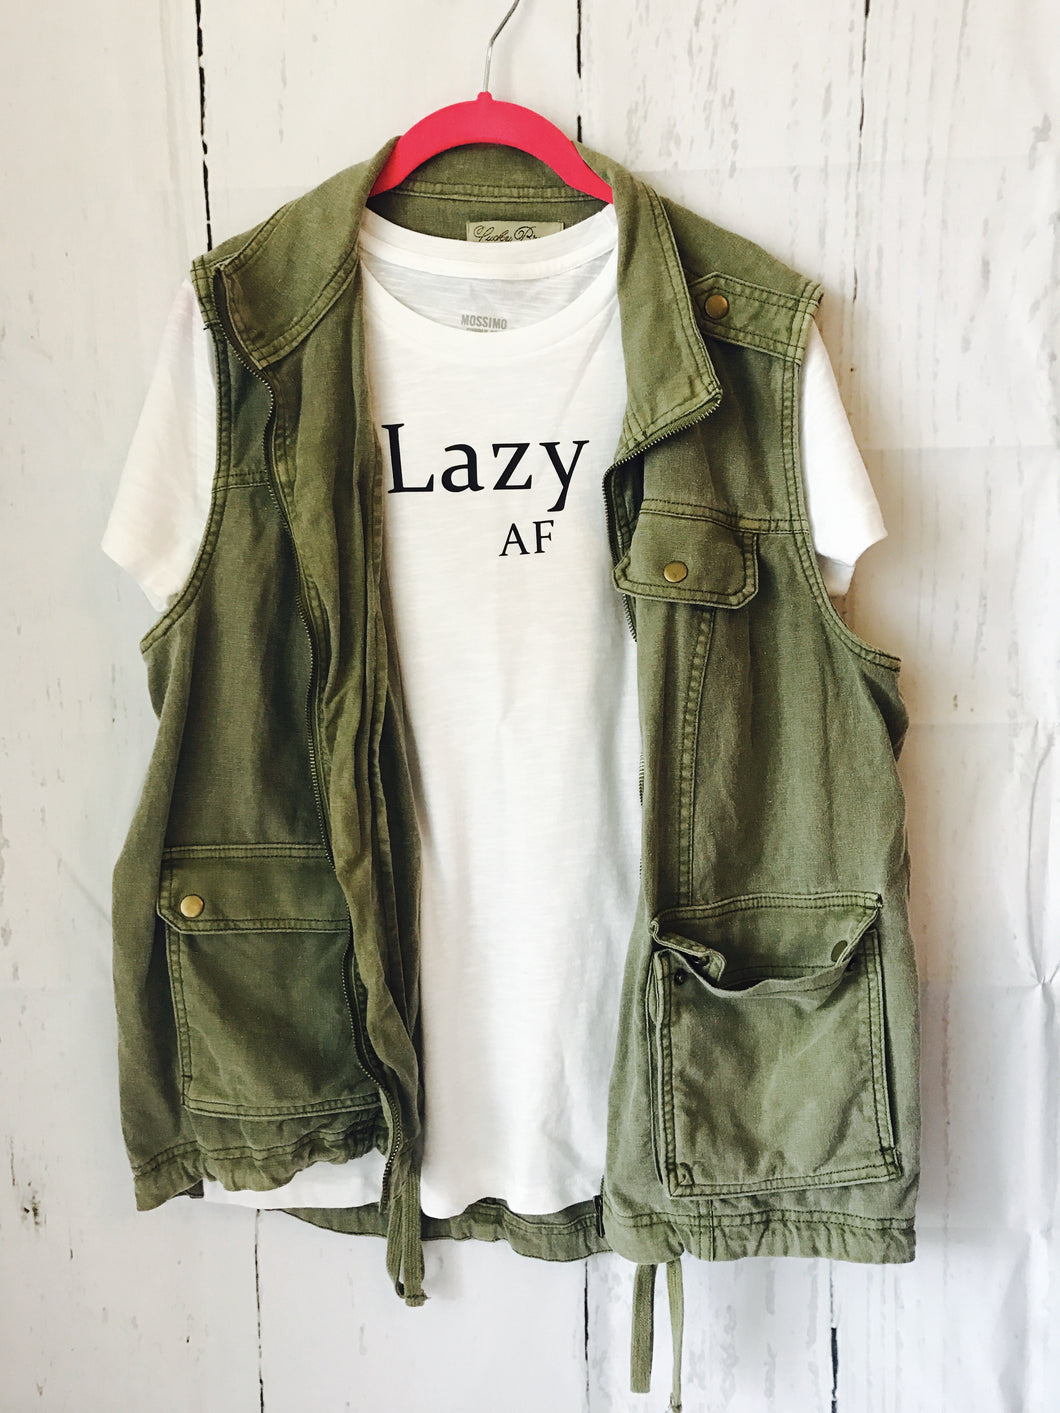 Lazy AF white tee, tshirt, shirt Women's fit - Mavictoria Designs Hot Press Express